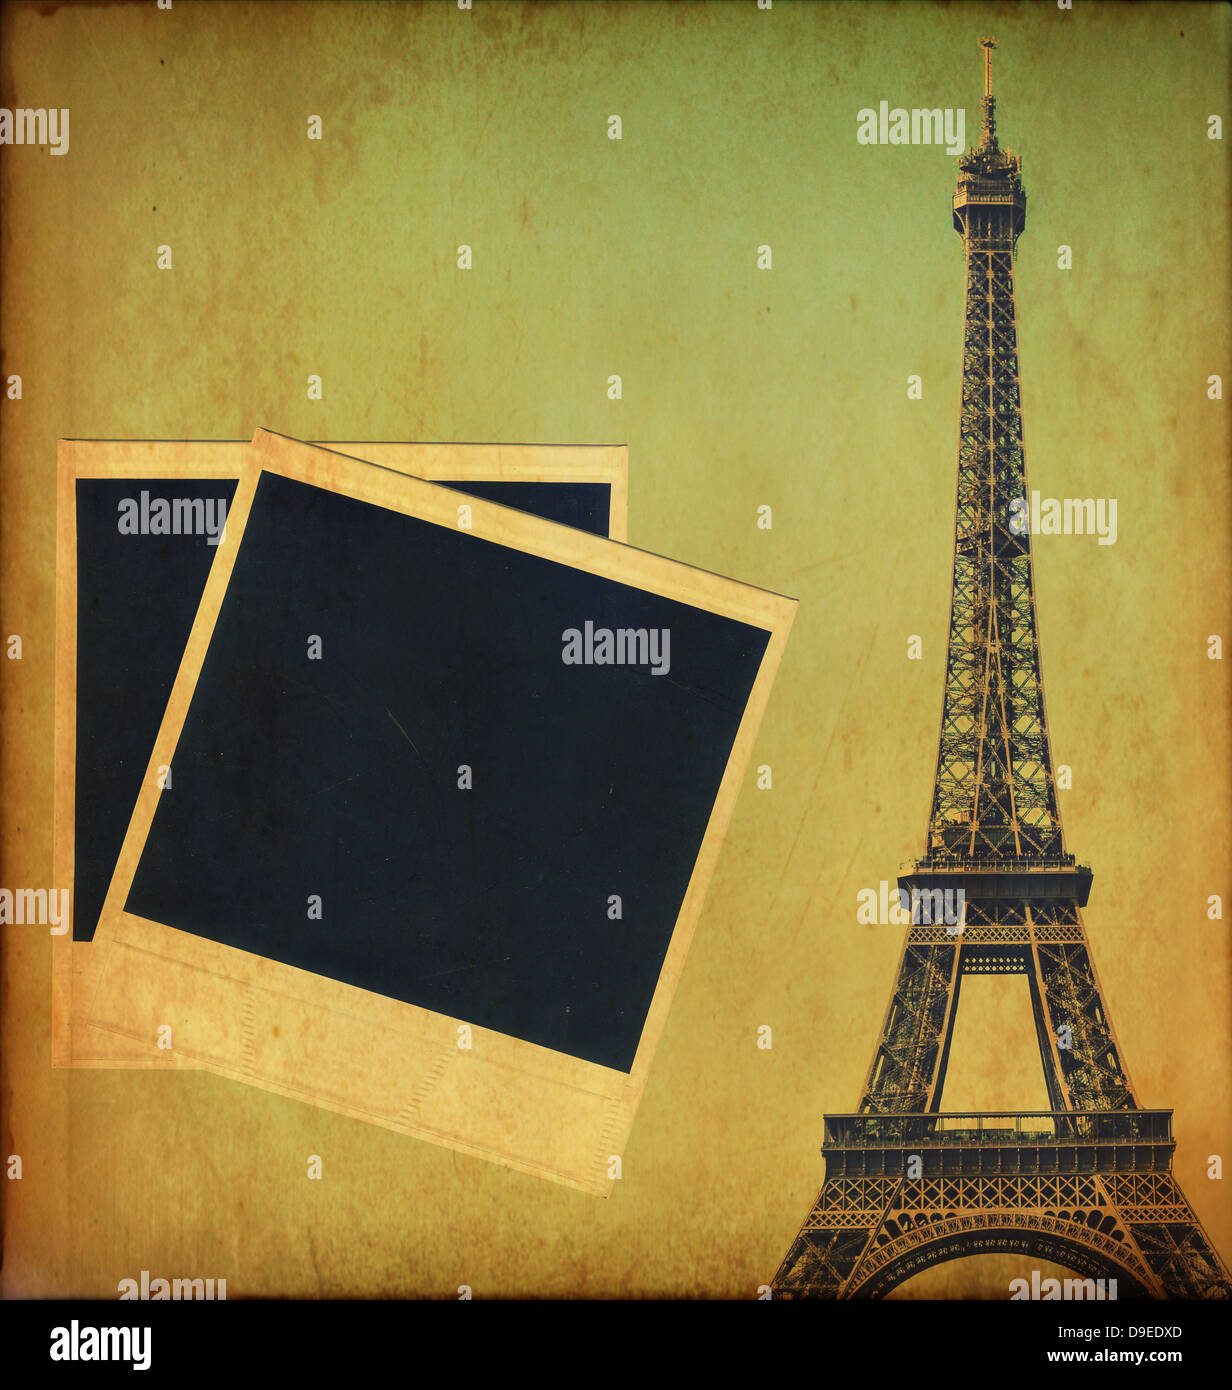 Vintage image of eiffel tower and blank photo frames stock photo vintage image of eiffel tower and blank photo frames jeuxipadfo Images